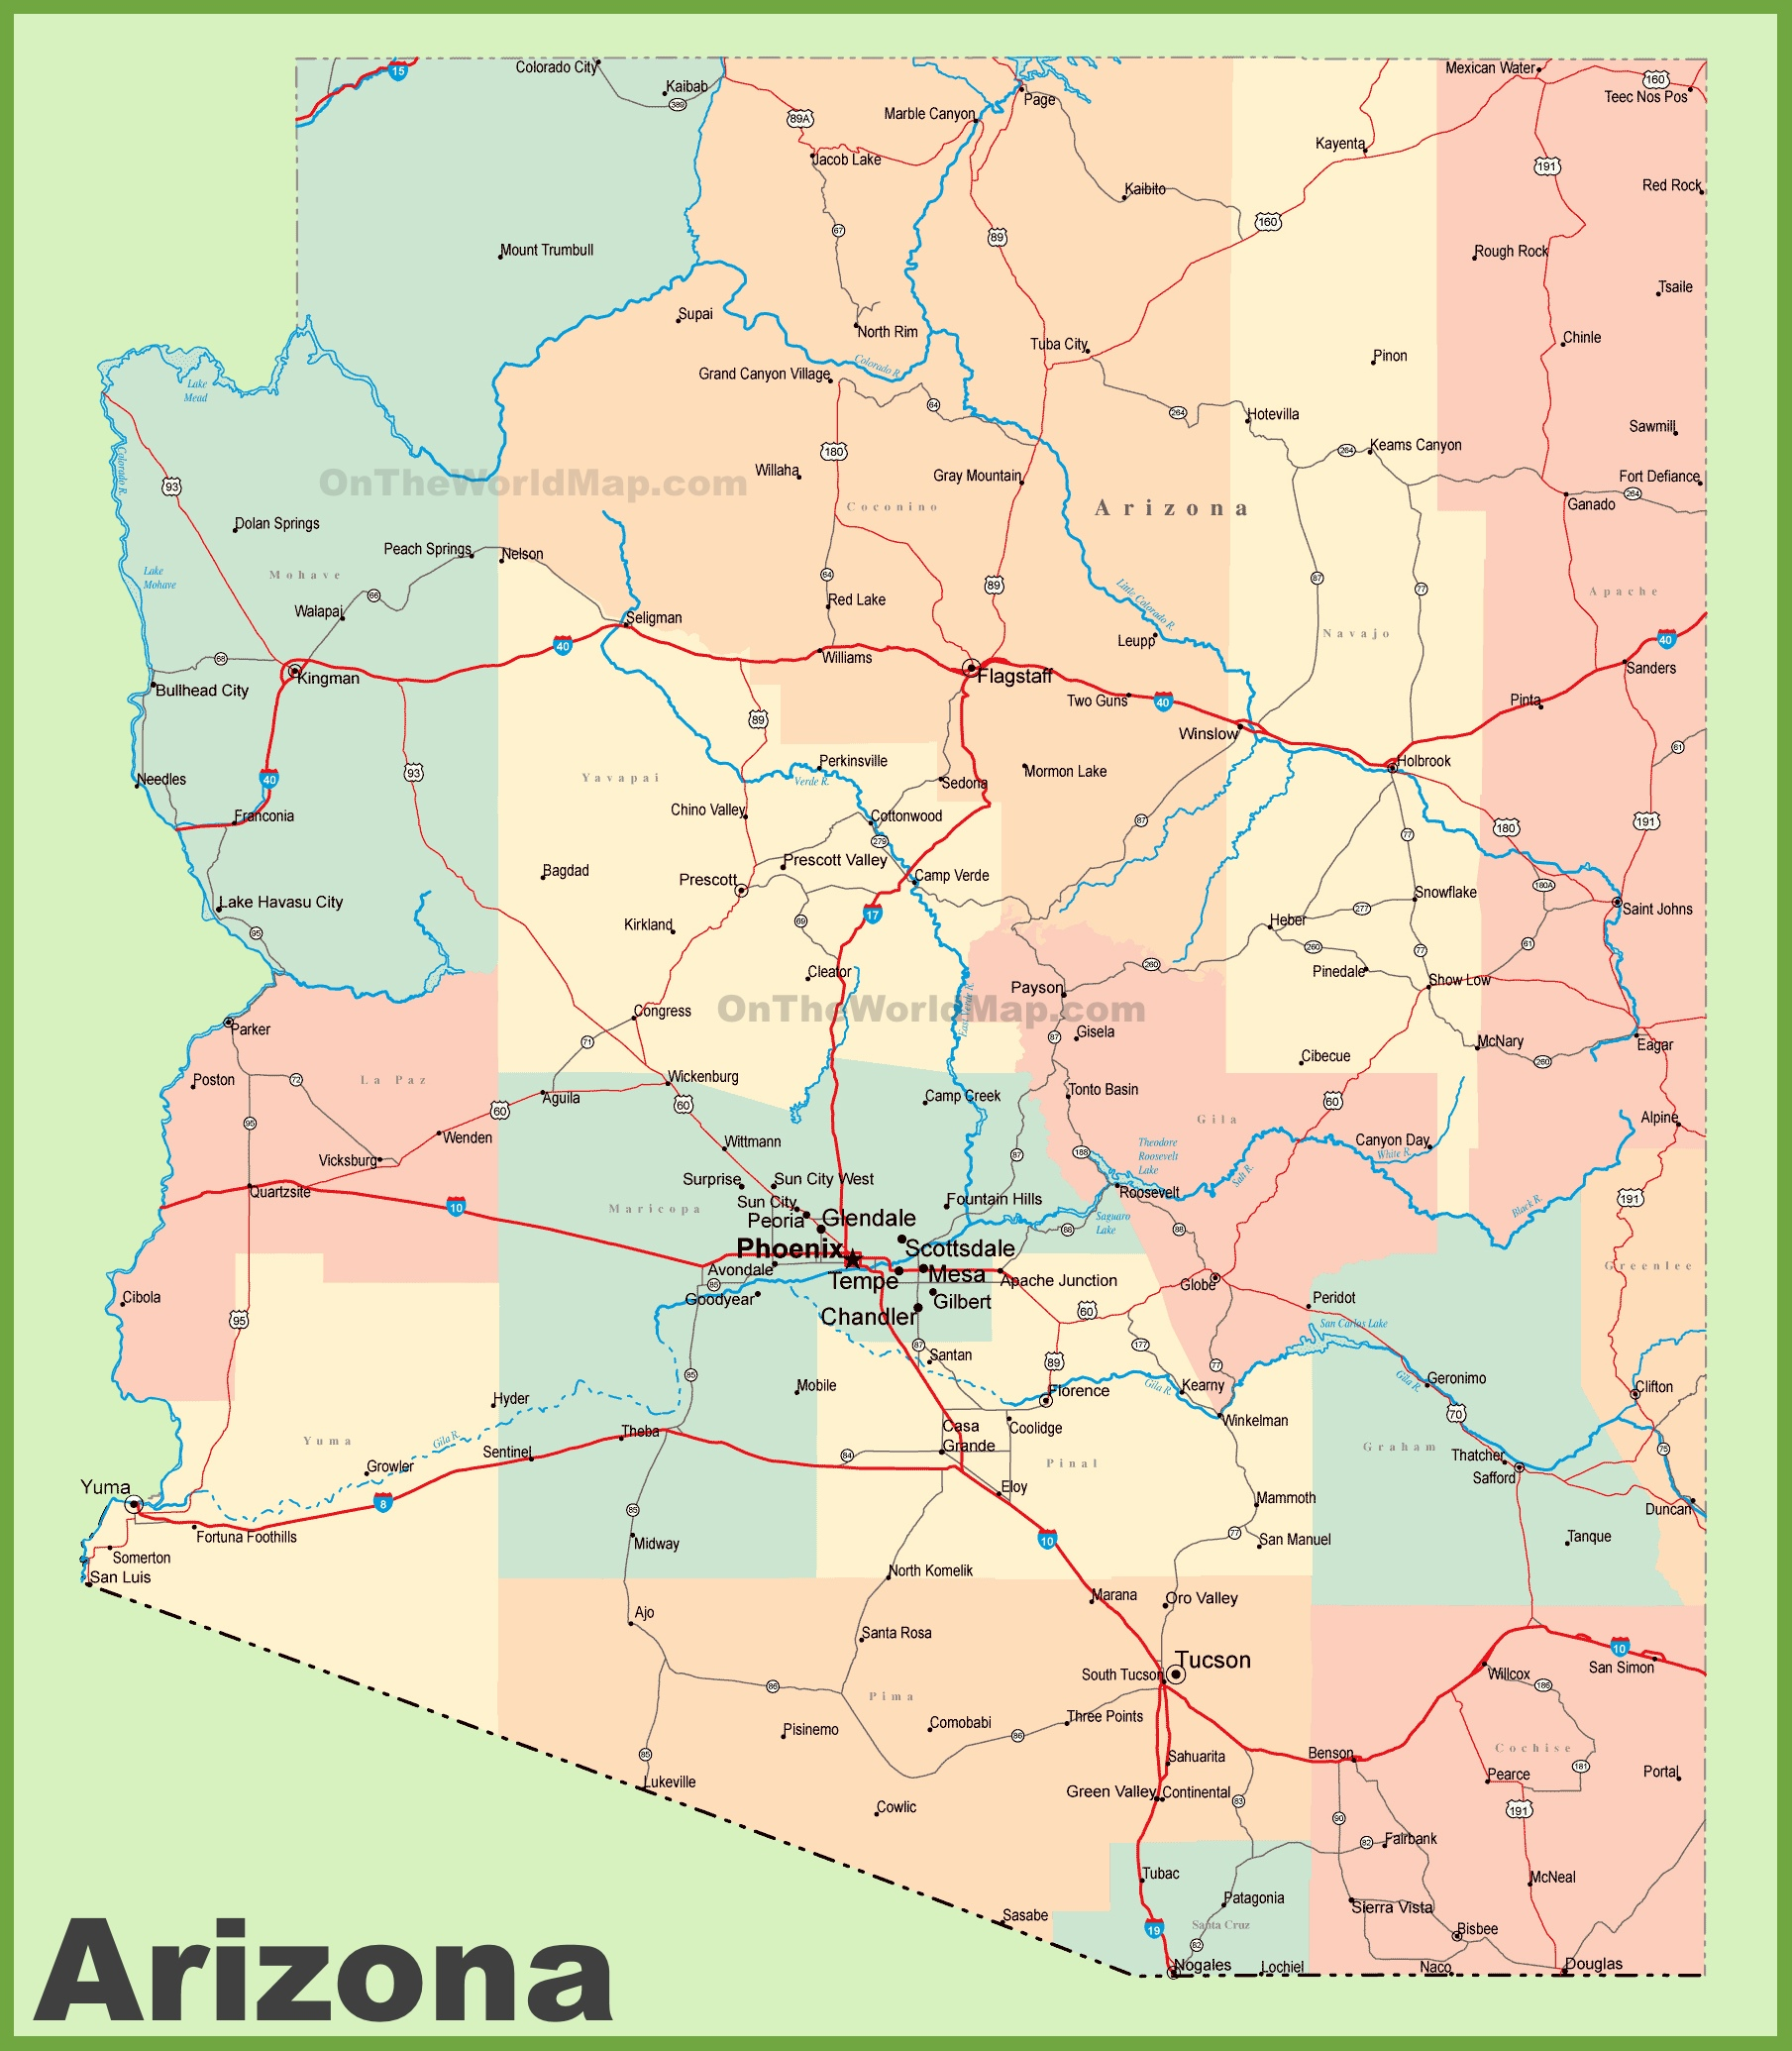 Arizona Road Map With Cities And Towns - Map of colorado ski resorts and cities